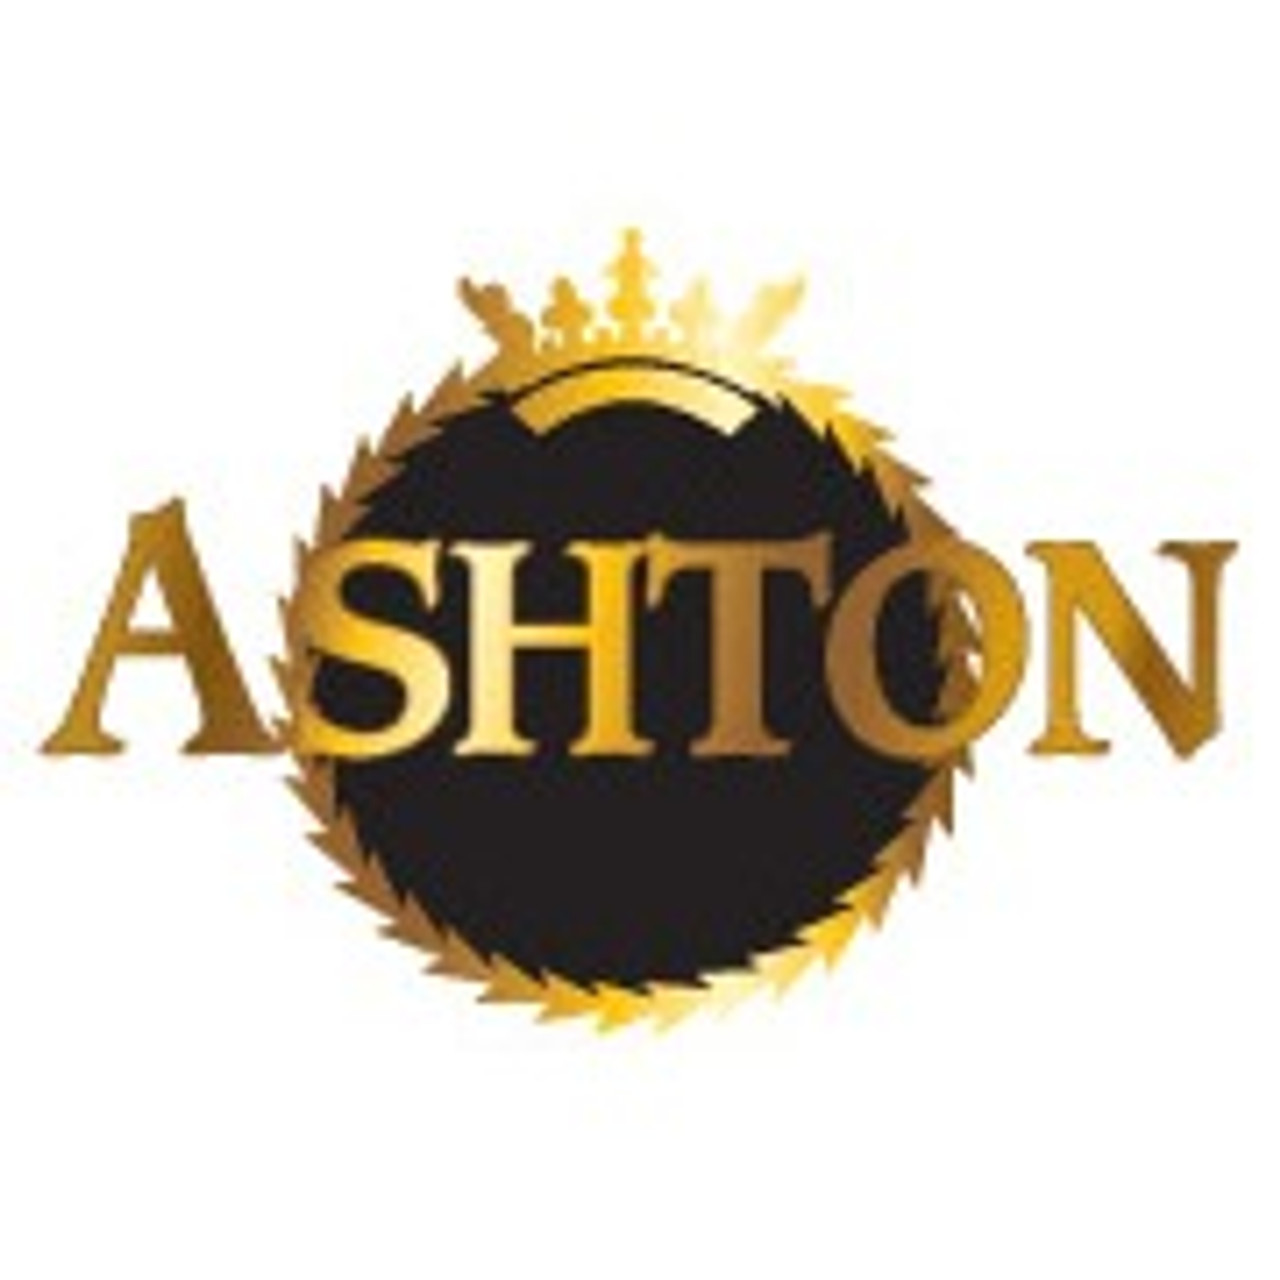 Ashton Senoritas Cigars - 3 1/2 x 30 (10 Packs of 10)